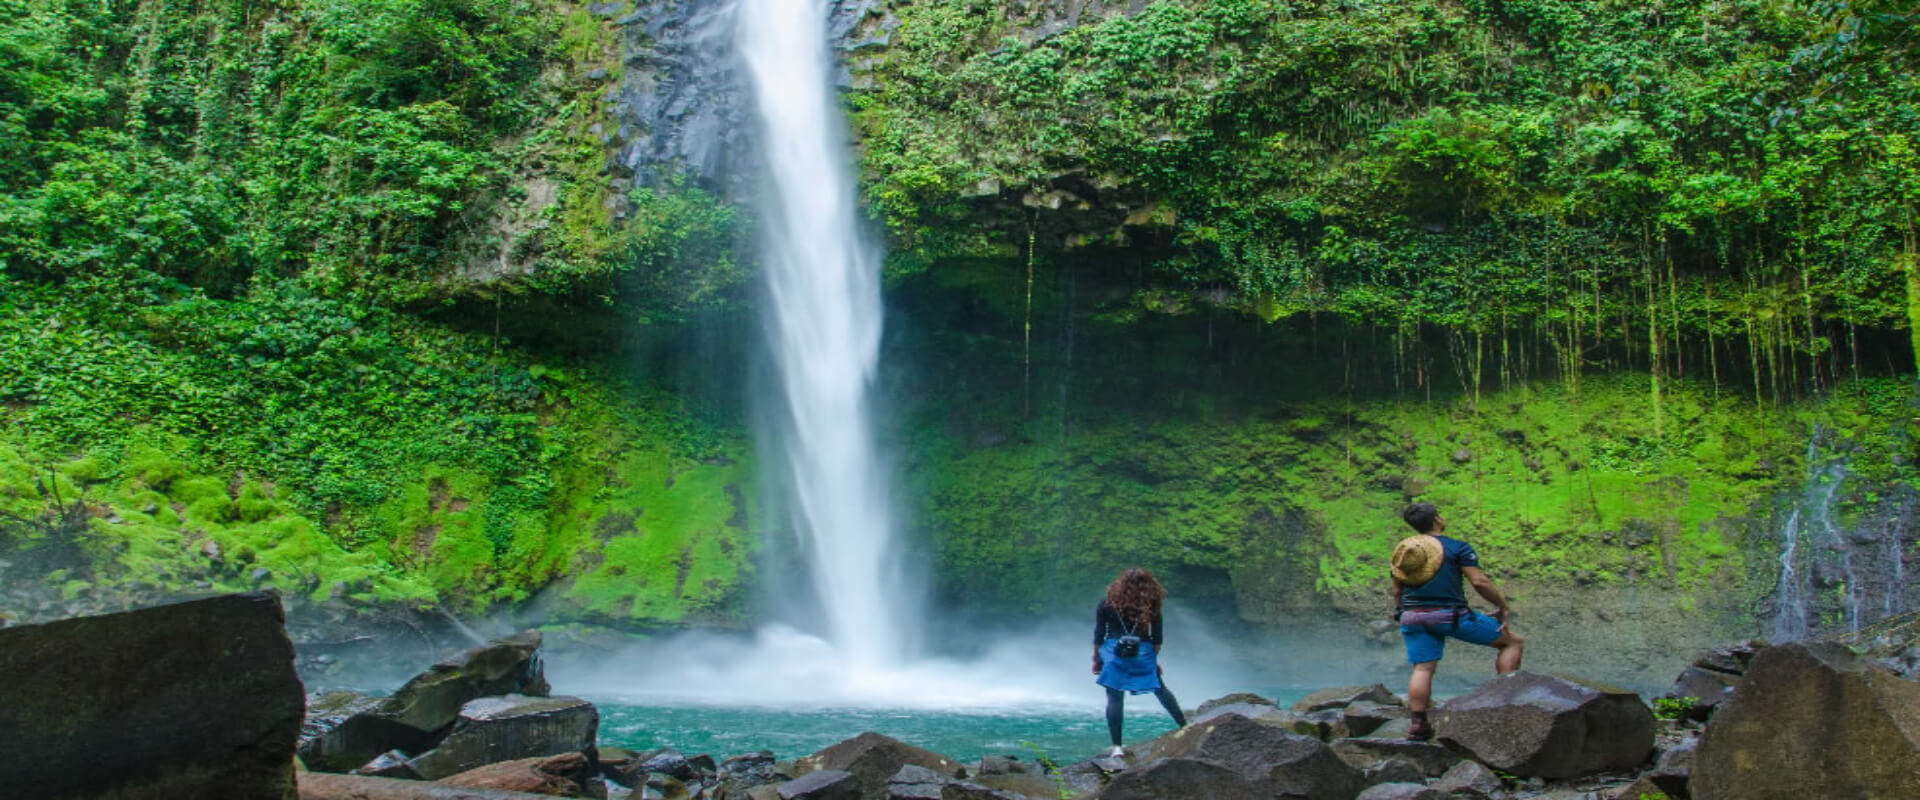 La Fortuna Waterfall Guided Hike | Costa Rica Jade Tours